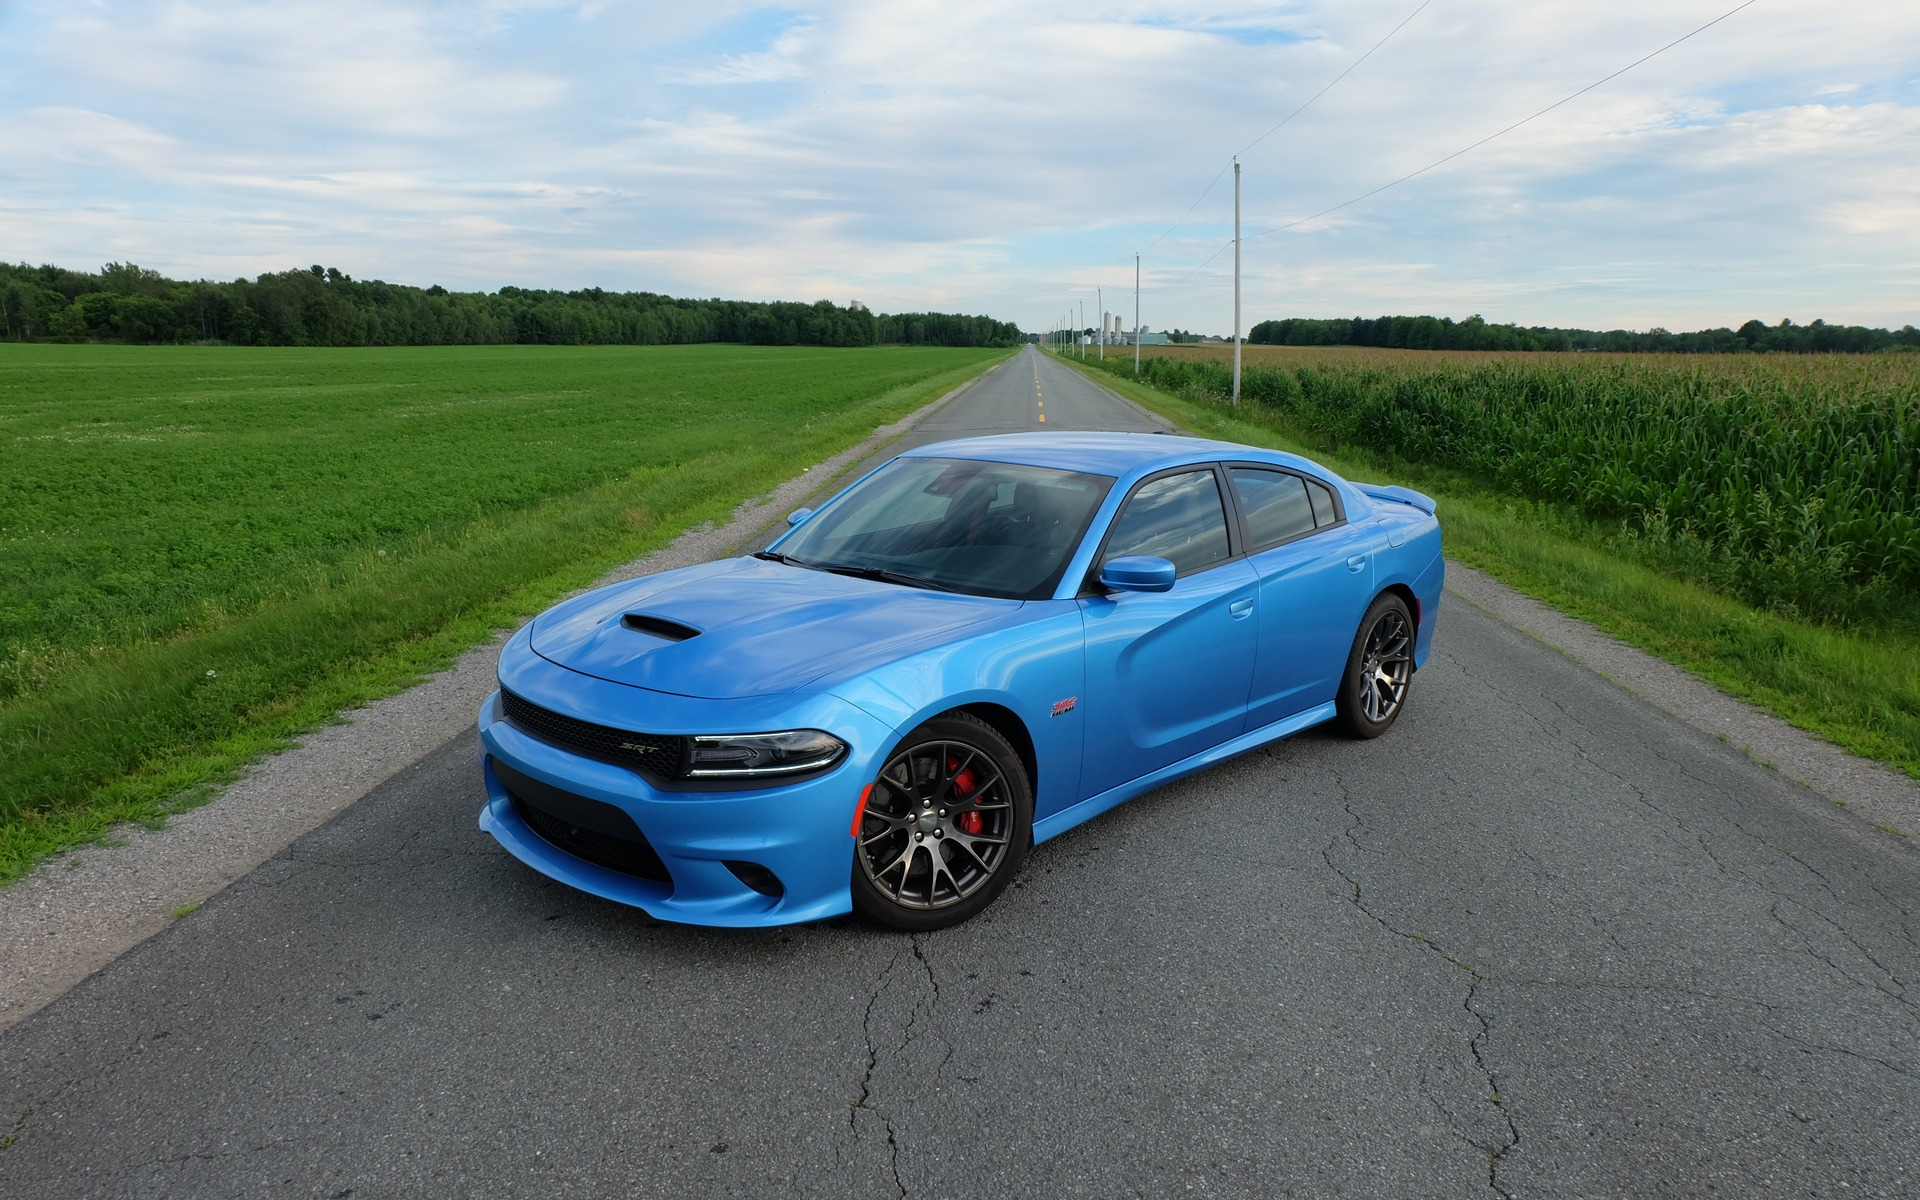 dodge charger srt 392 2016 appr t la sauce 1970 guide auto. Black Bedroom Furniture Sets. Home Design Ideas